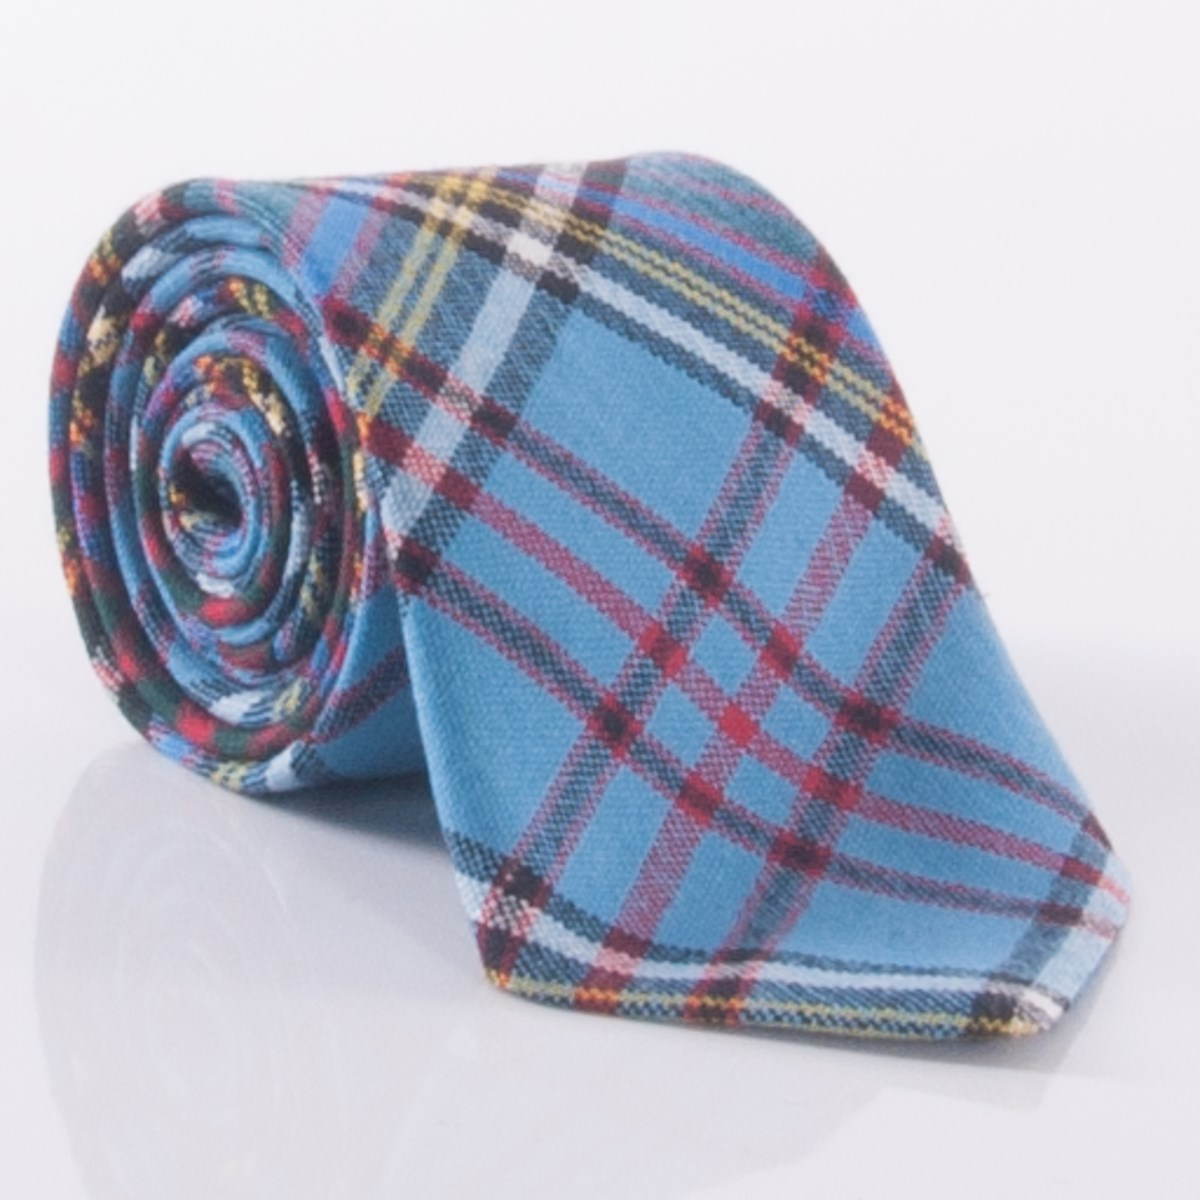 d491ad5d478 Available from 13.95 √ Tartan Tie √ Anderson √ Pure Wool - The Kilt Store